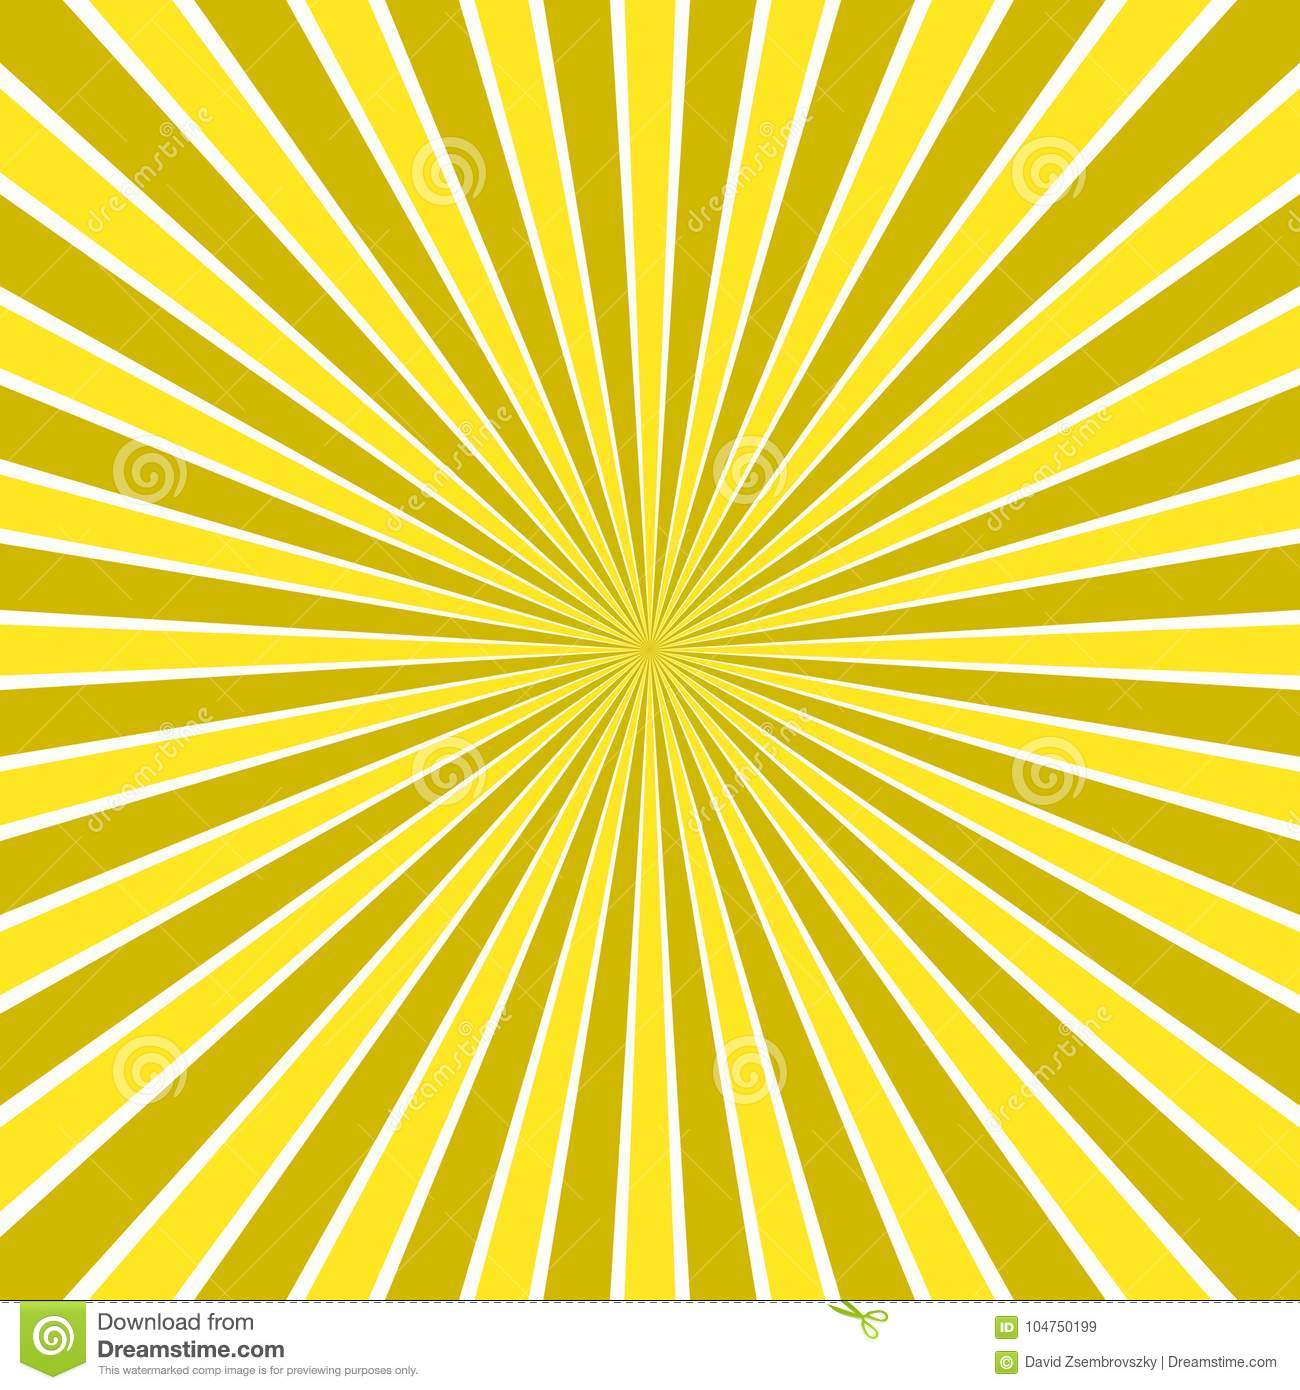 Dynamic abstract sun rays background - comic vector design from radial stripe pattern